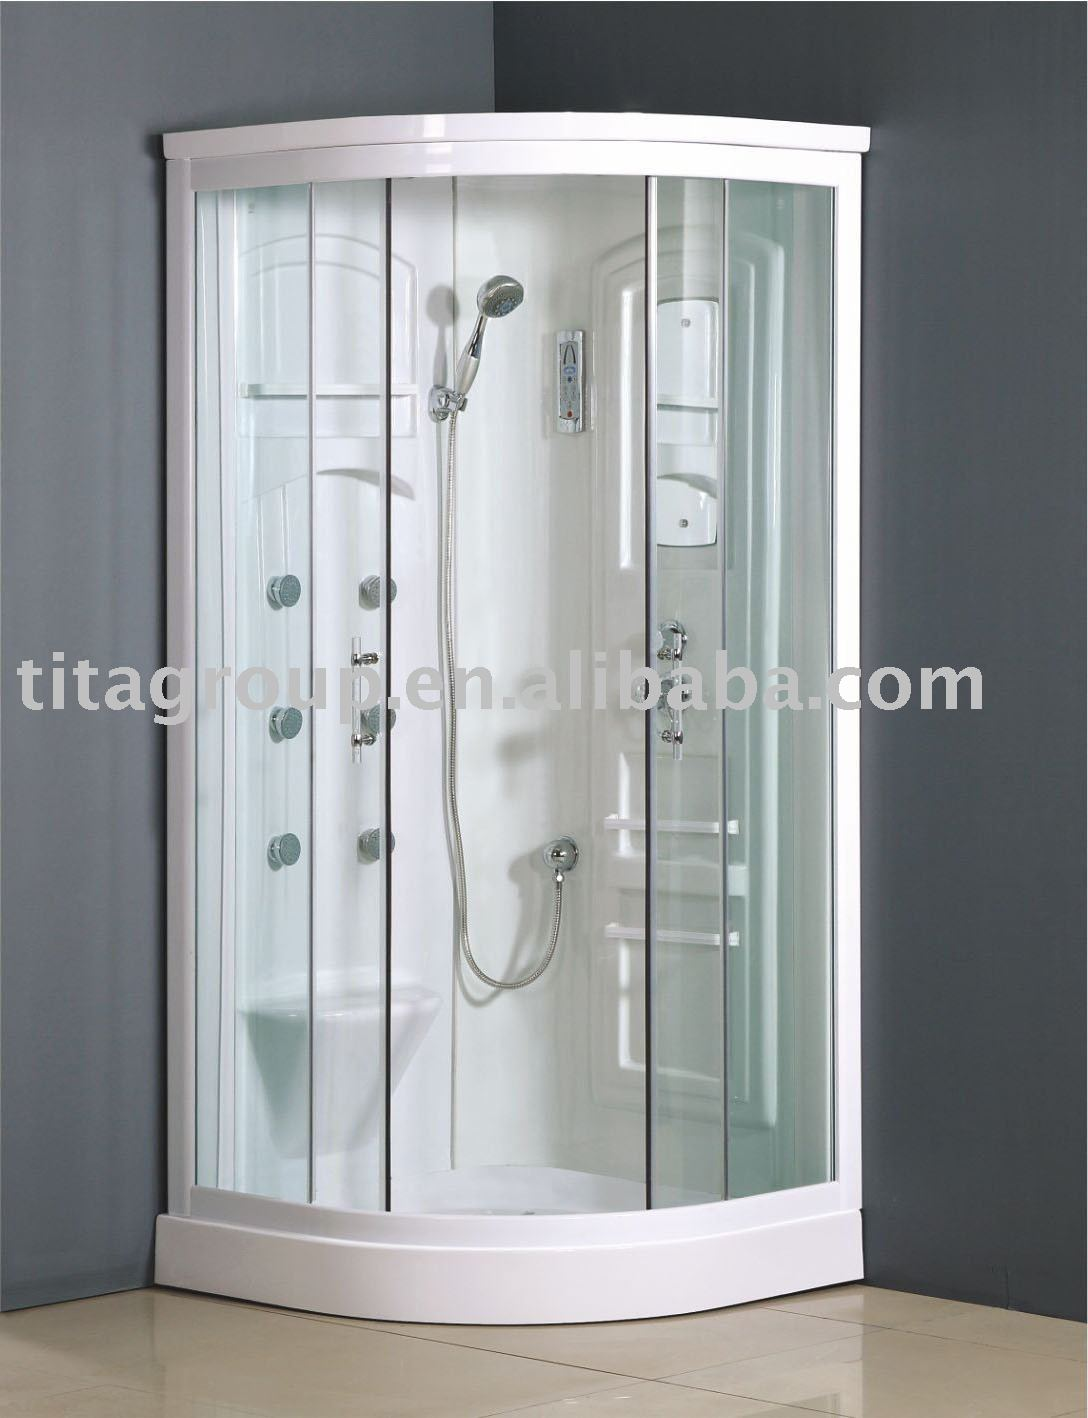 Walk In Shower Stall, Walk In Shower Stall Suppliers and ...